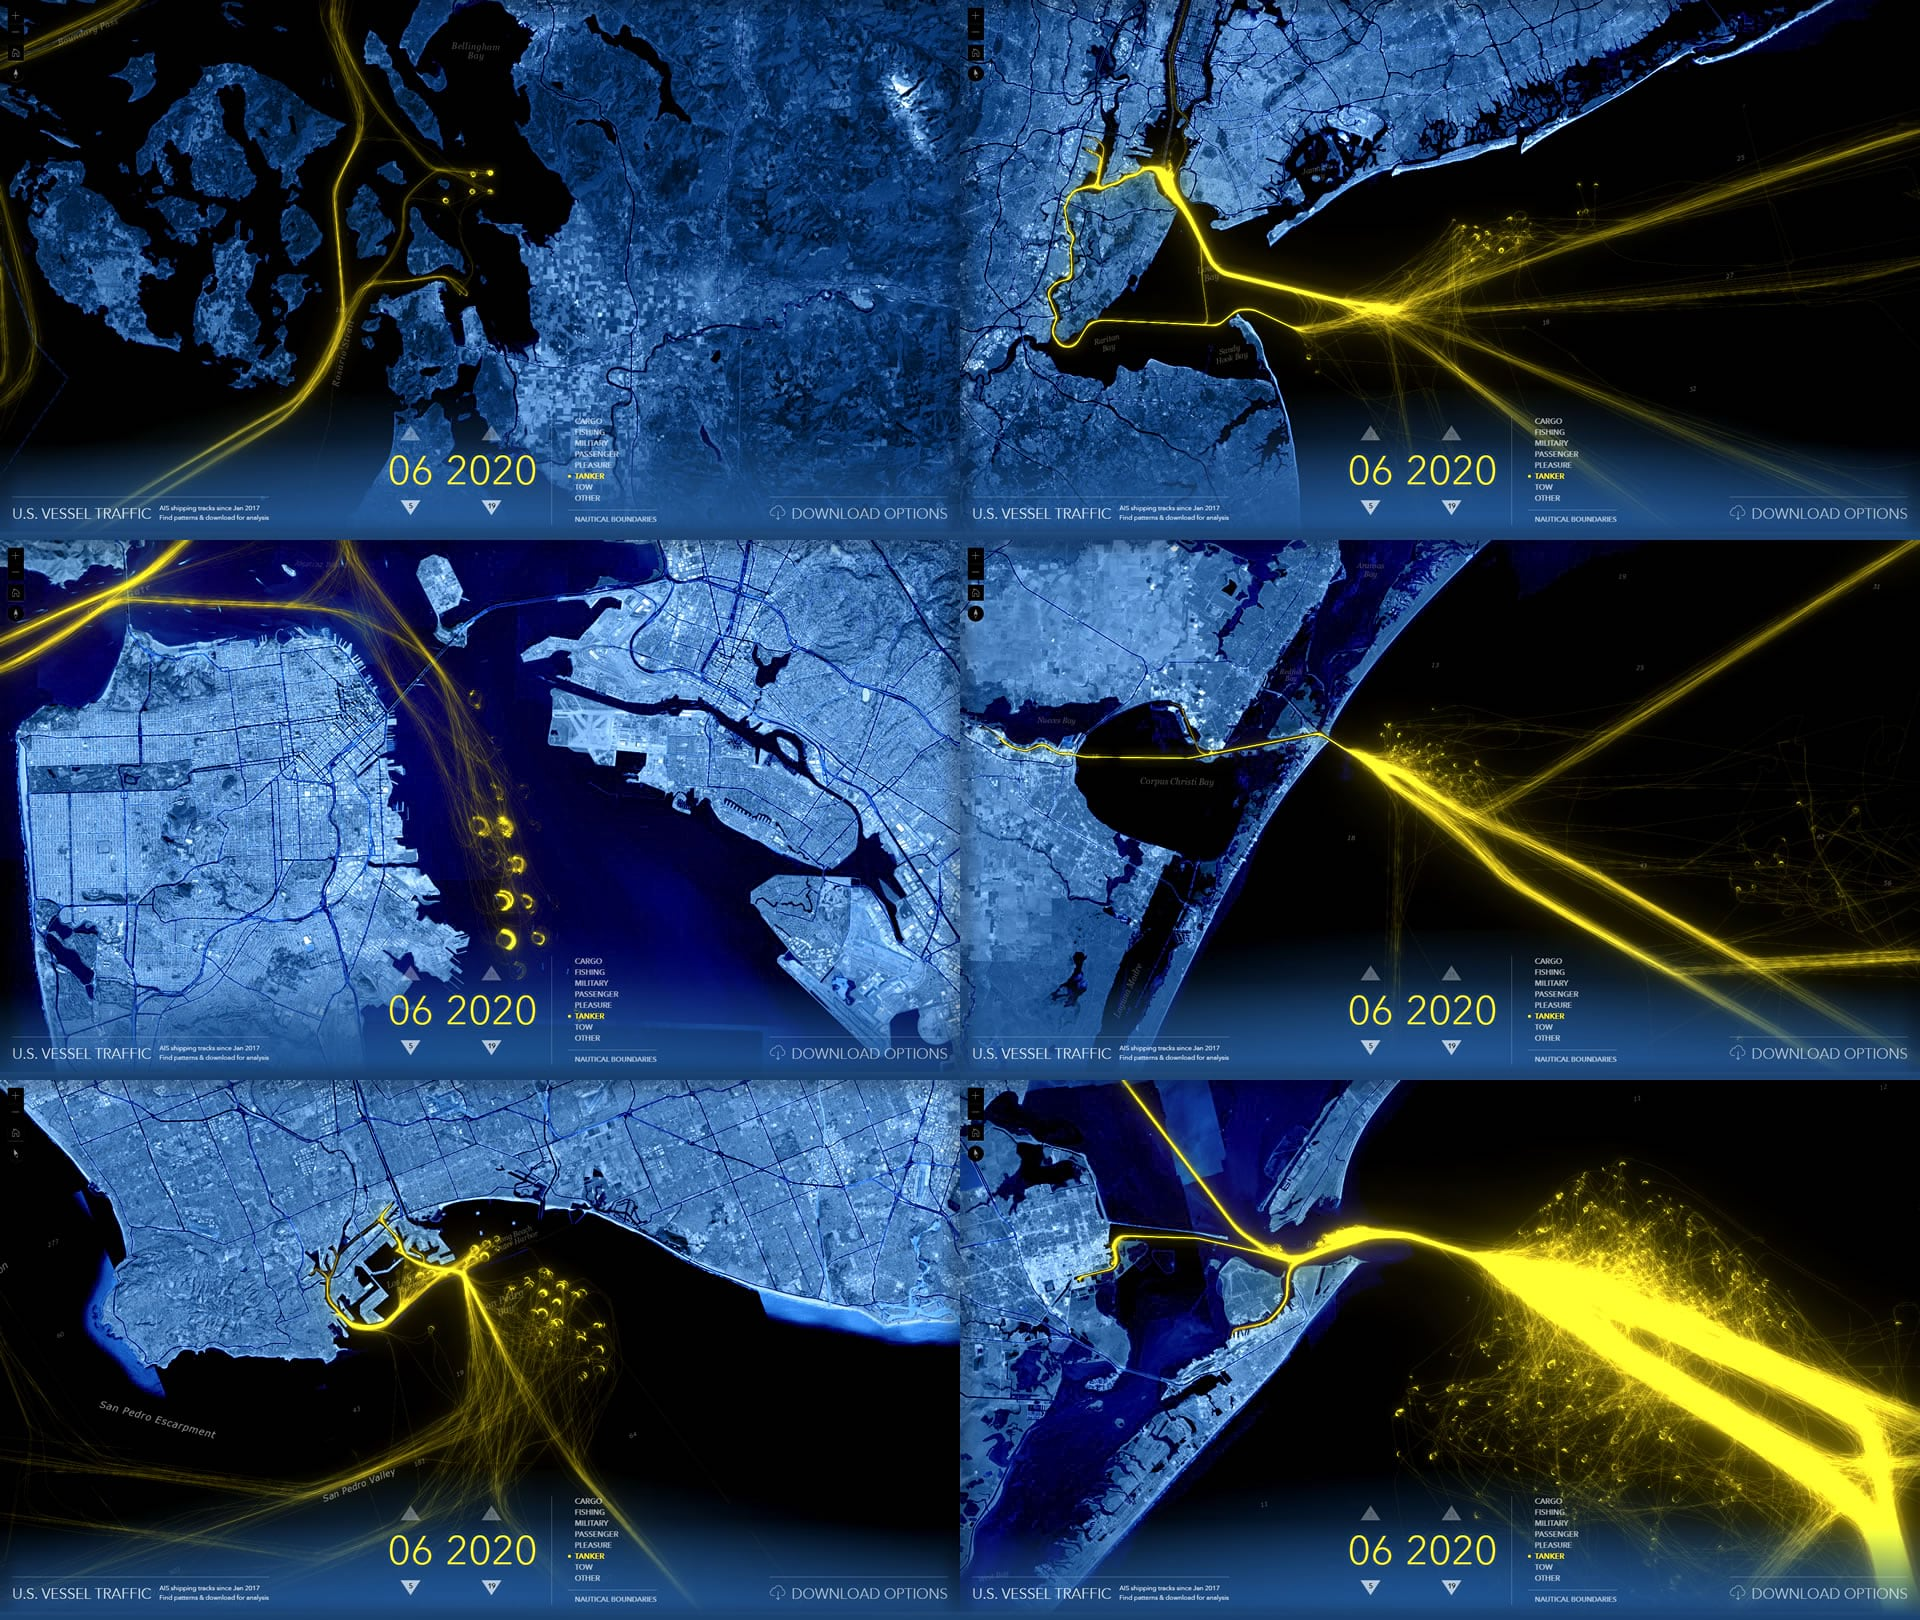 Large ports show grids of circular tanker patterns offshore, where they are anchored awaiting a port berth.